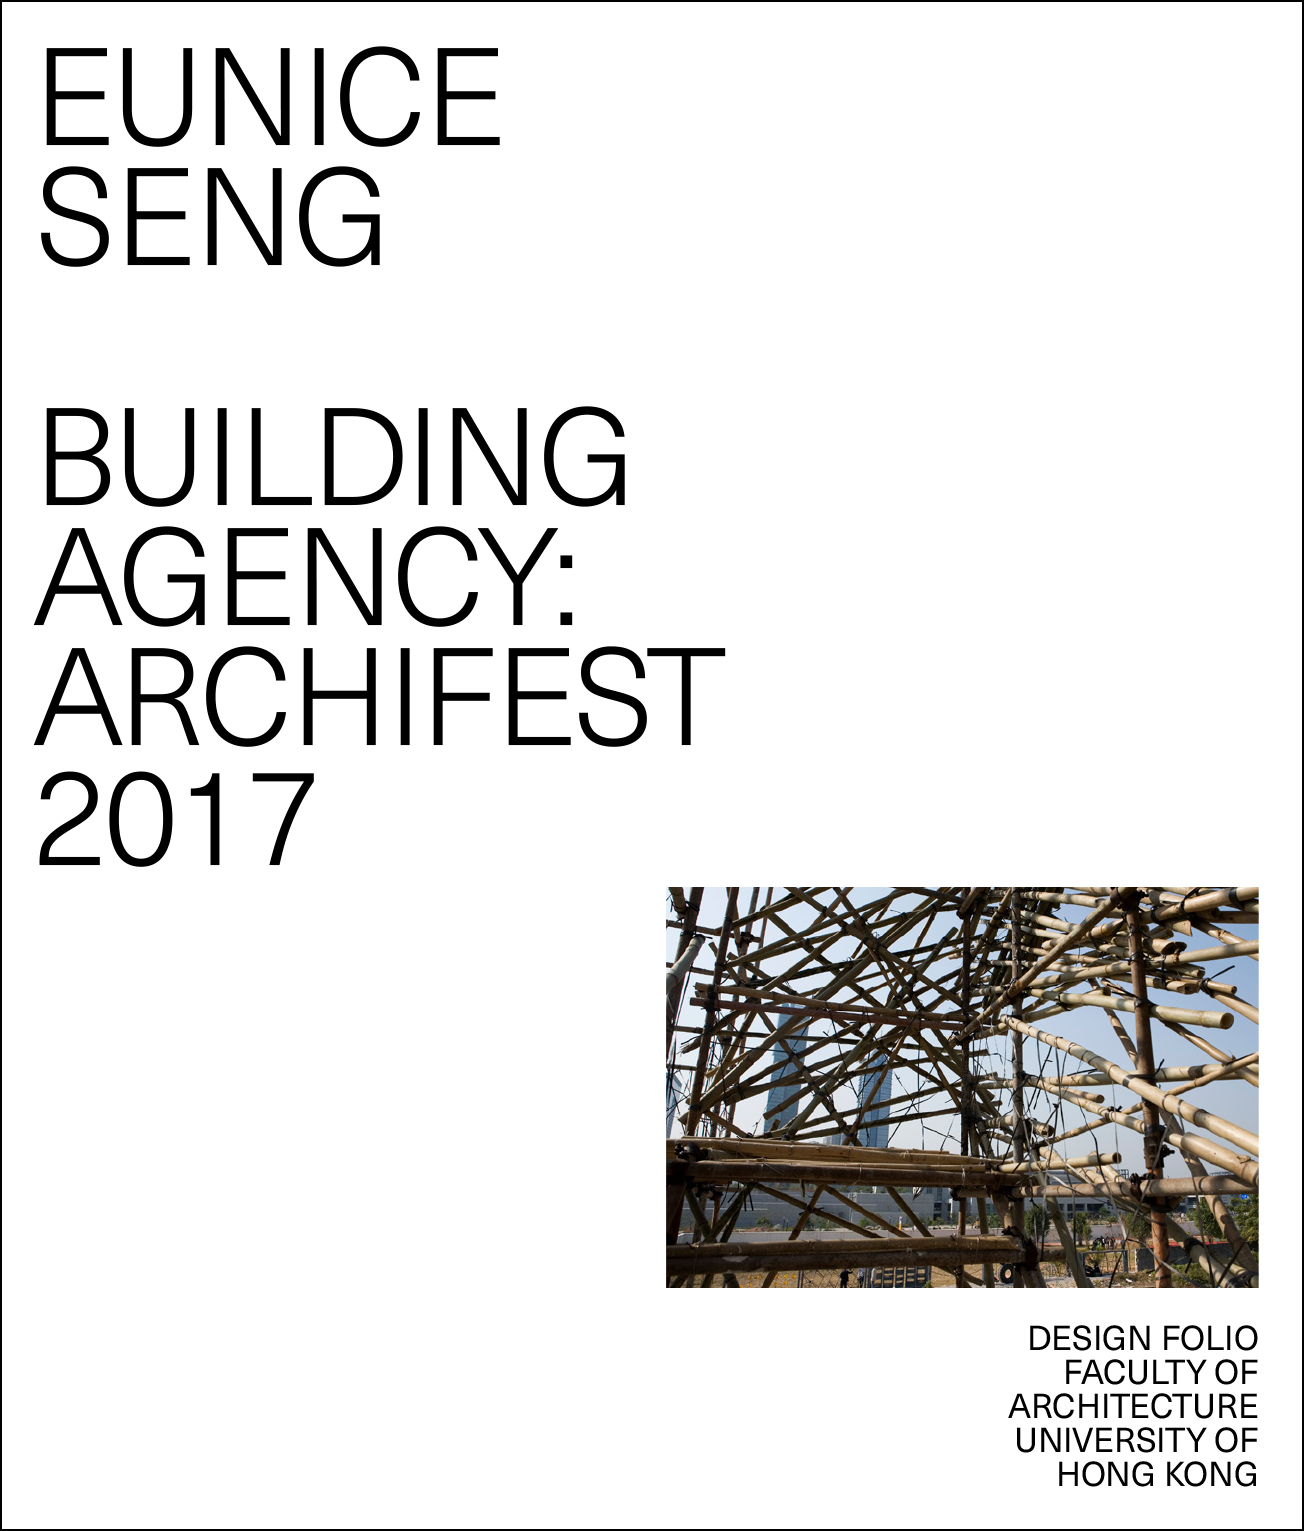 Building Agency Archifest 2017